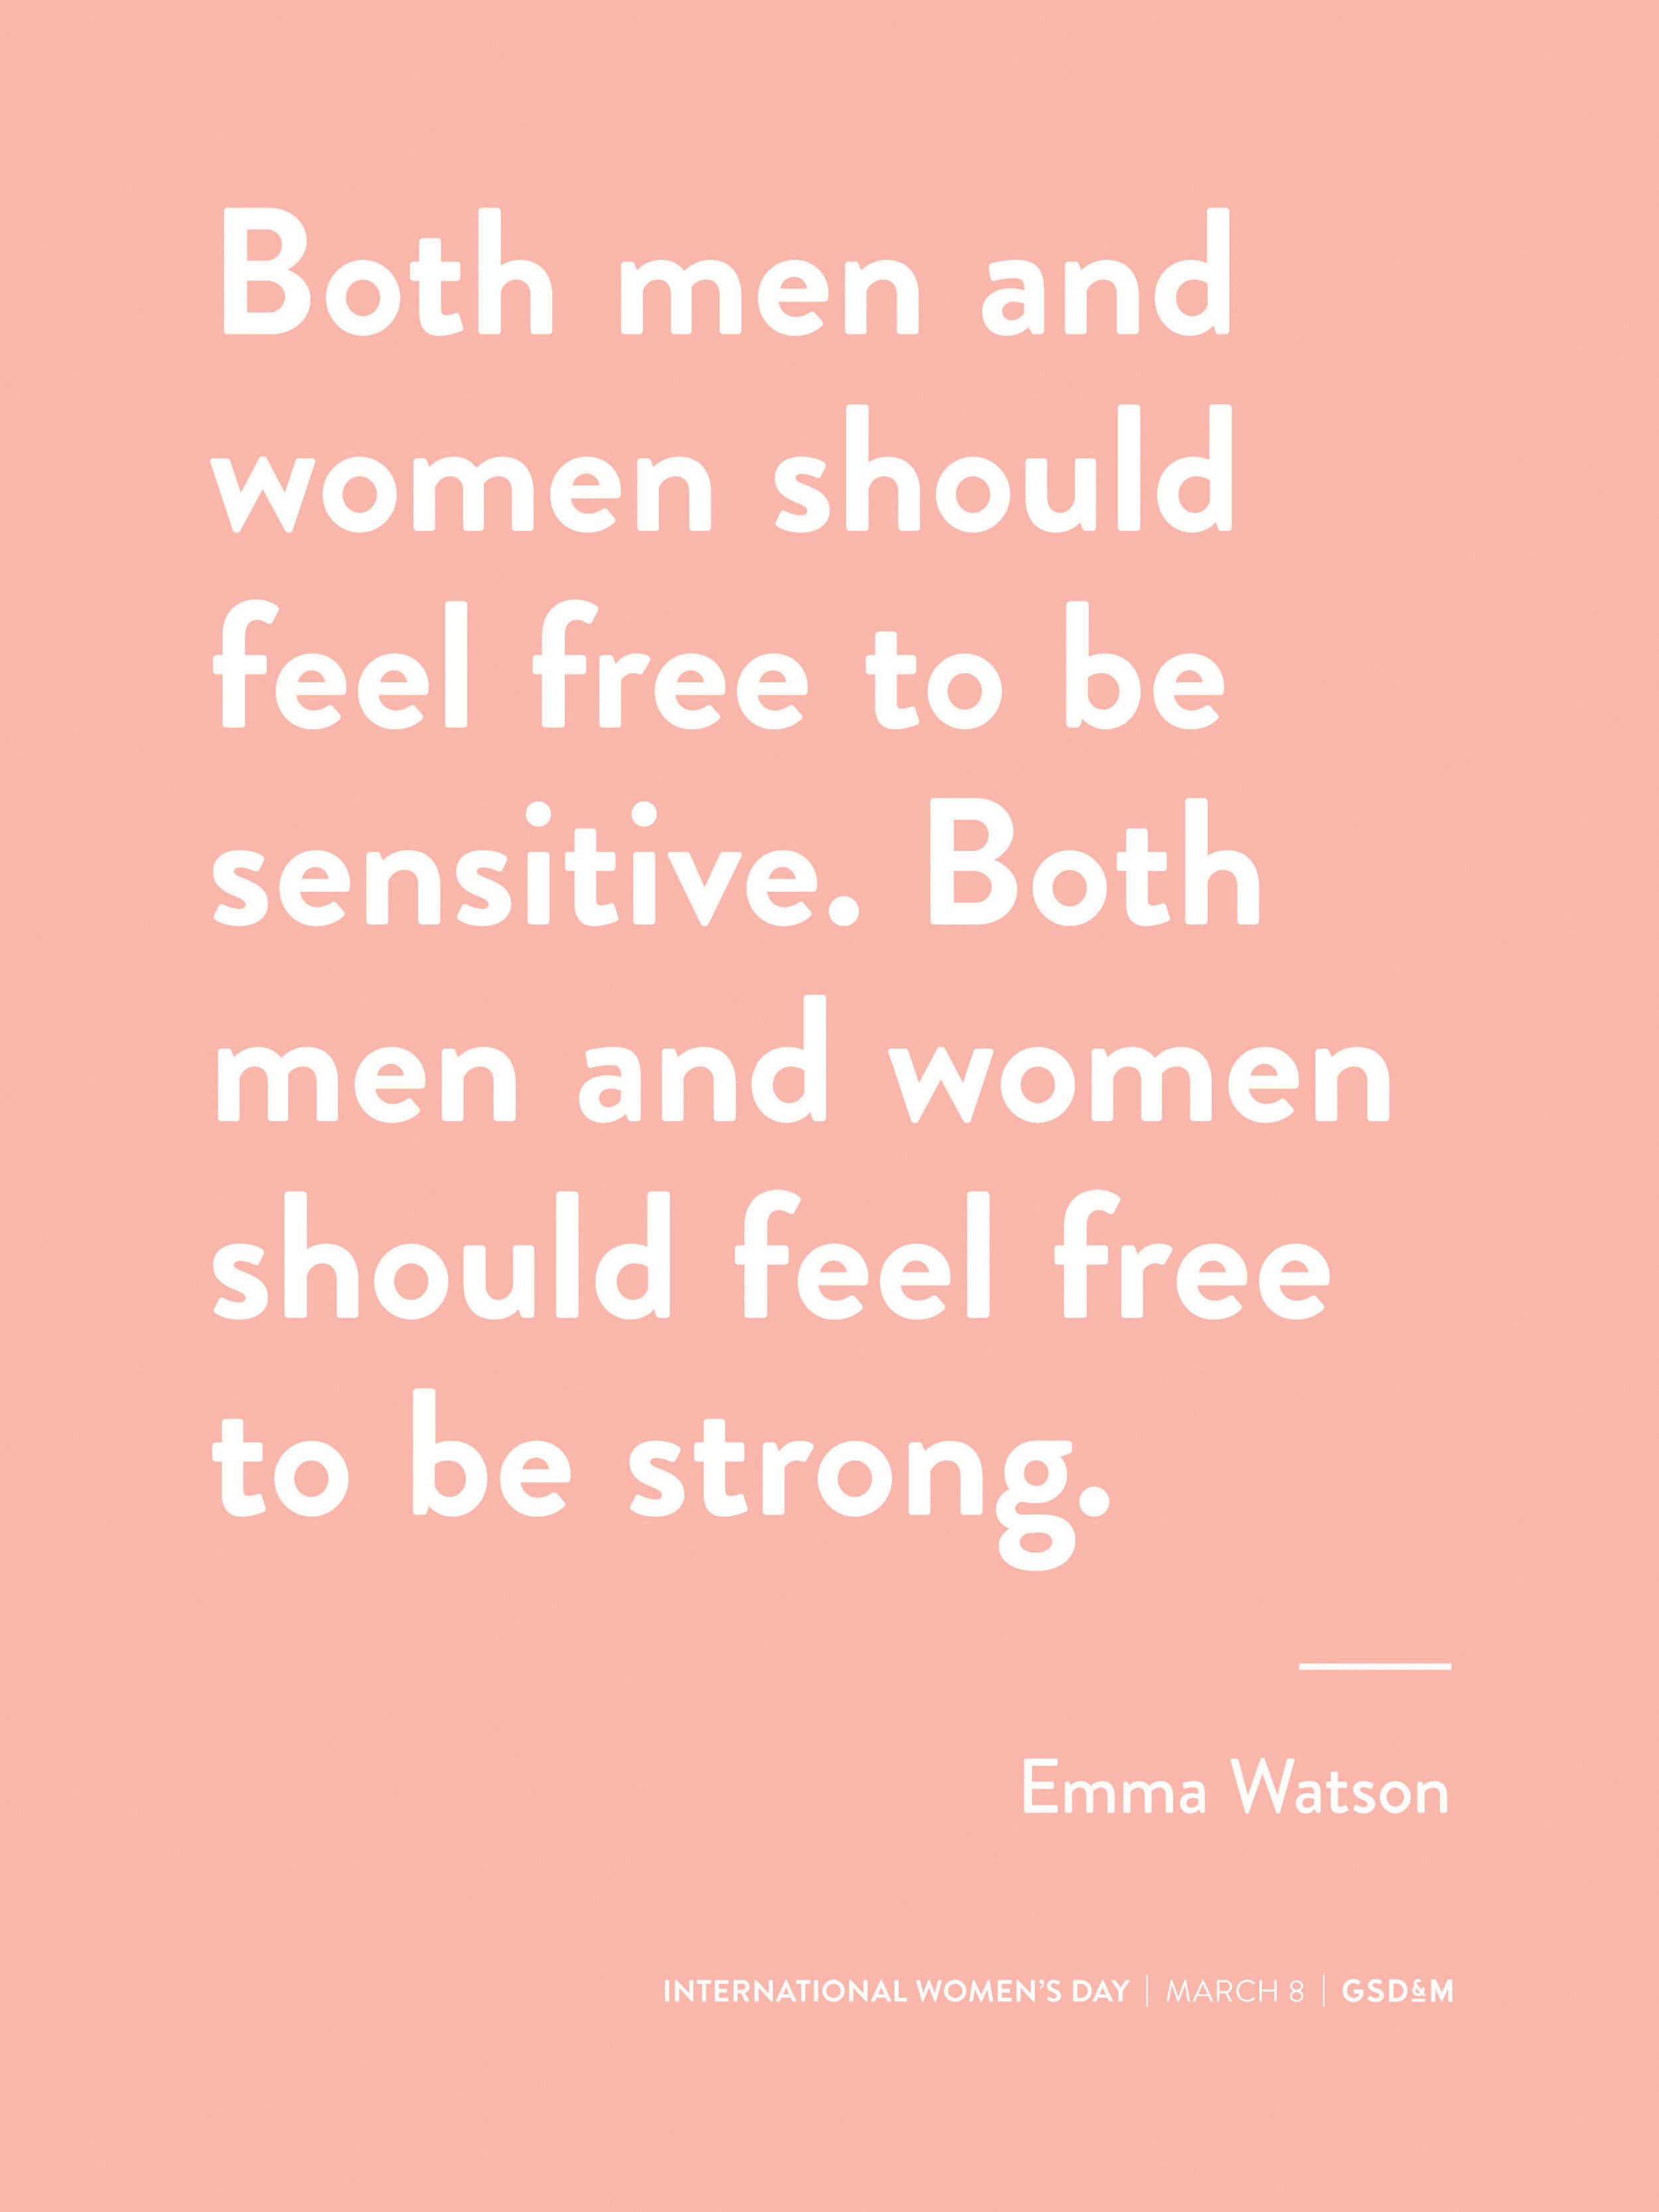 WomensDayPosters_Page_11.jpg